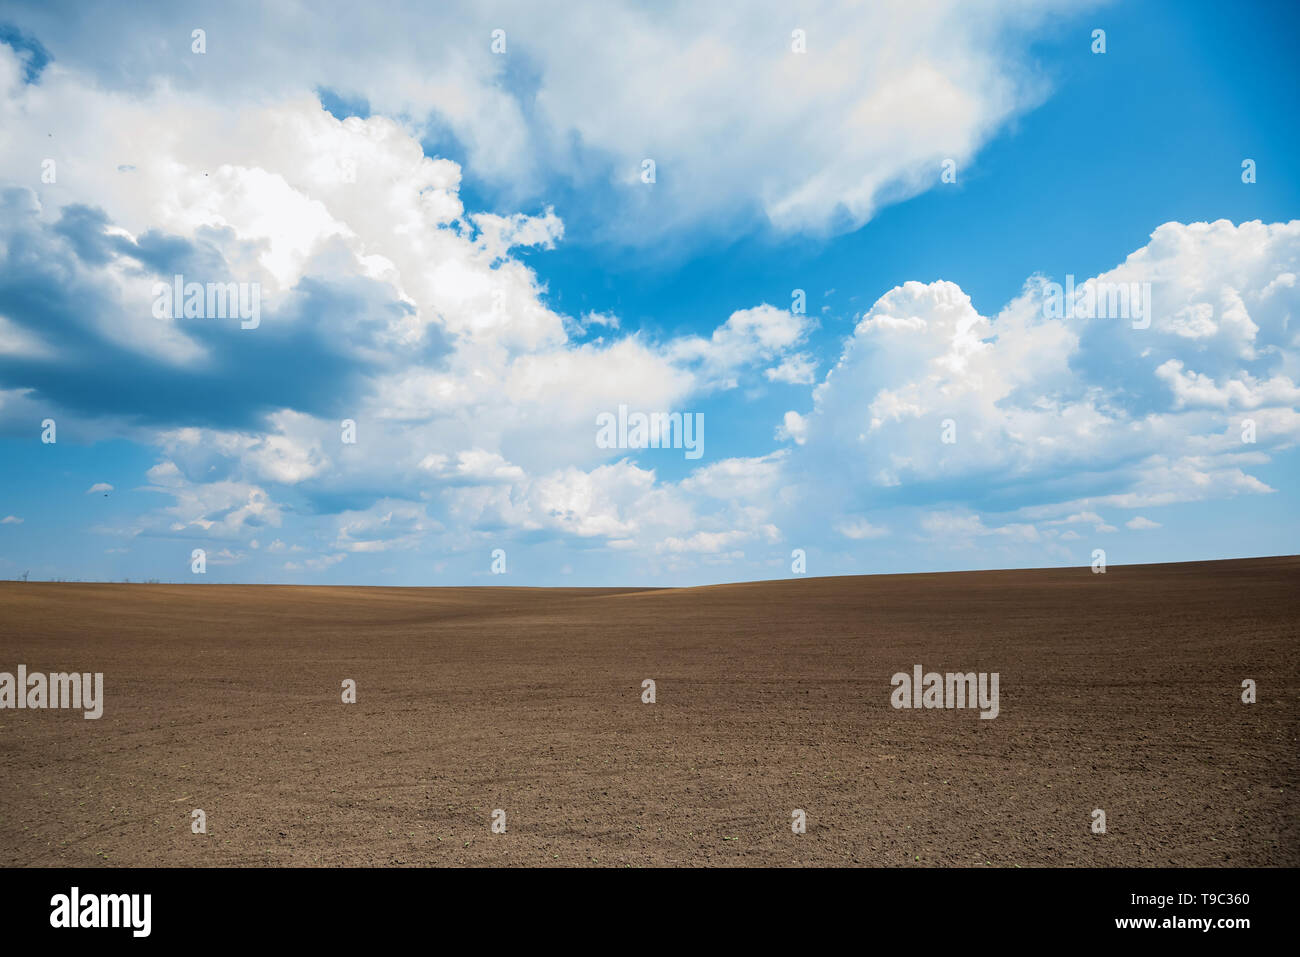 Natural landscape with empty spring farmland and blue sky - Stock Image